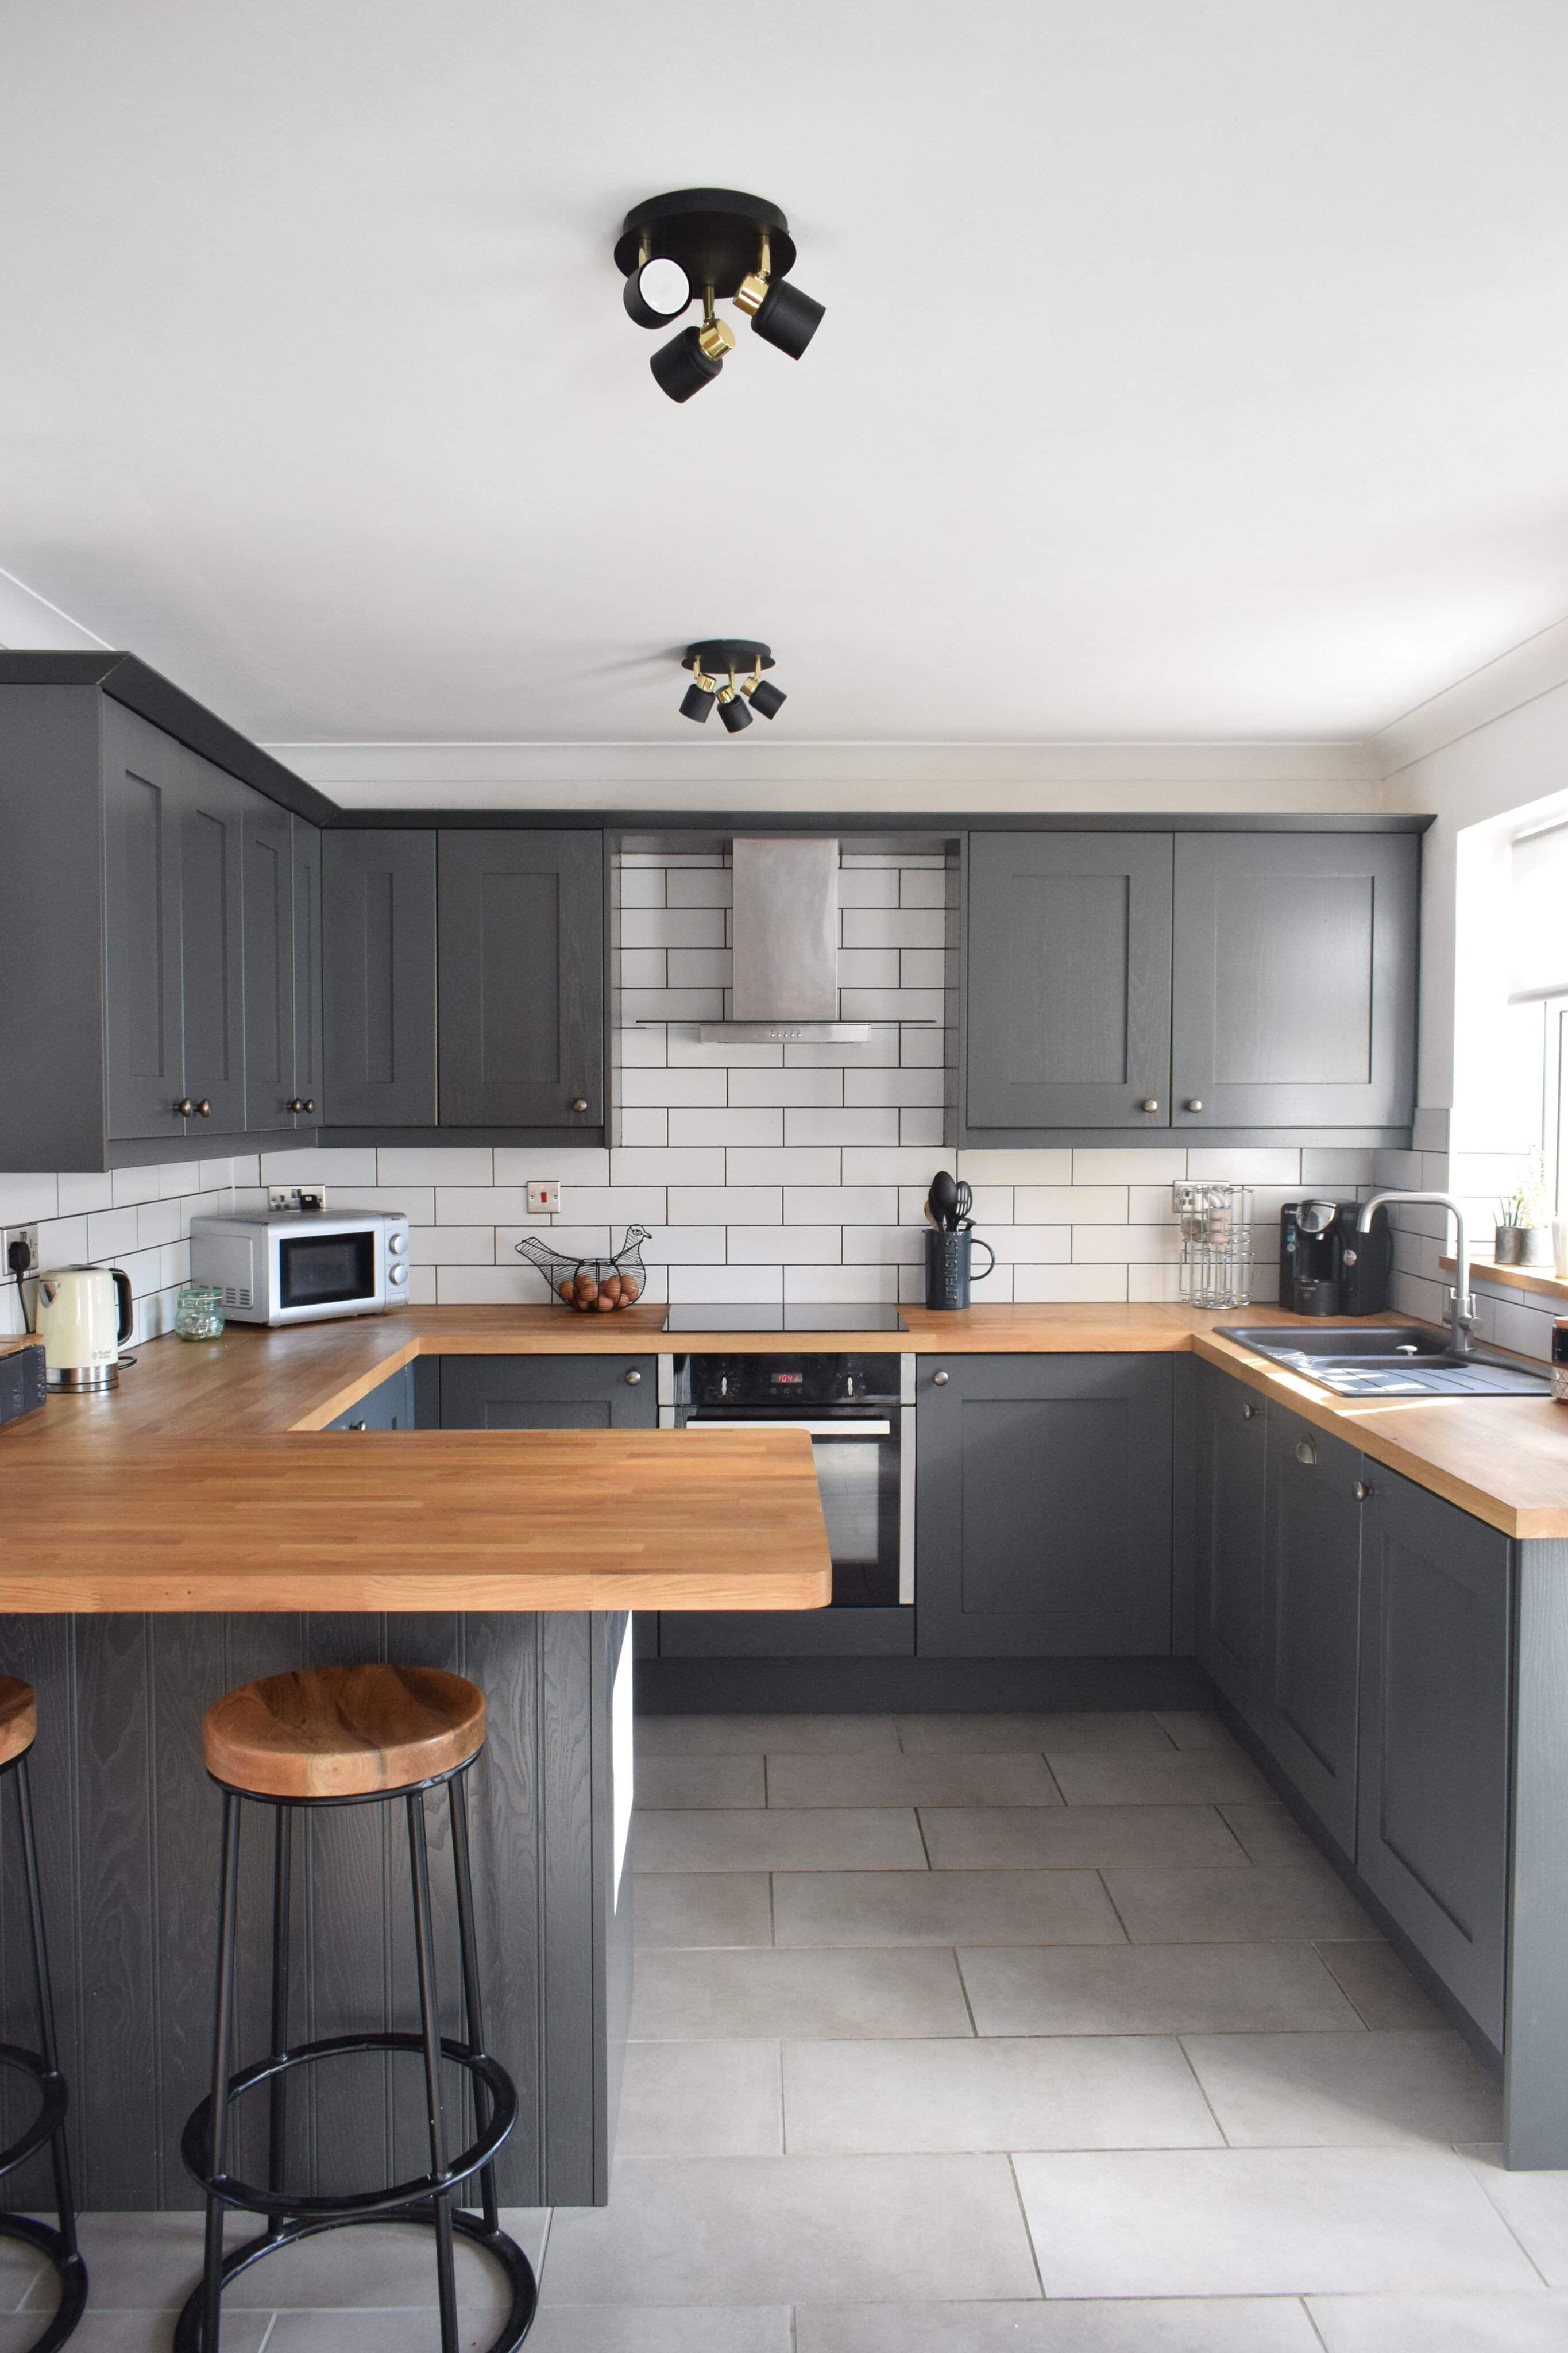 Budget Kitchen Reveal Before And After Photos Small Kitchen With Dark Cabinets Budget Kitchen Remodel Kitchen Design Small Kitchen Remodel Small